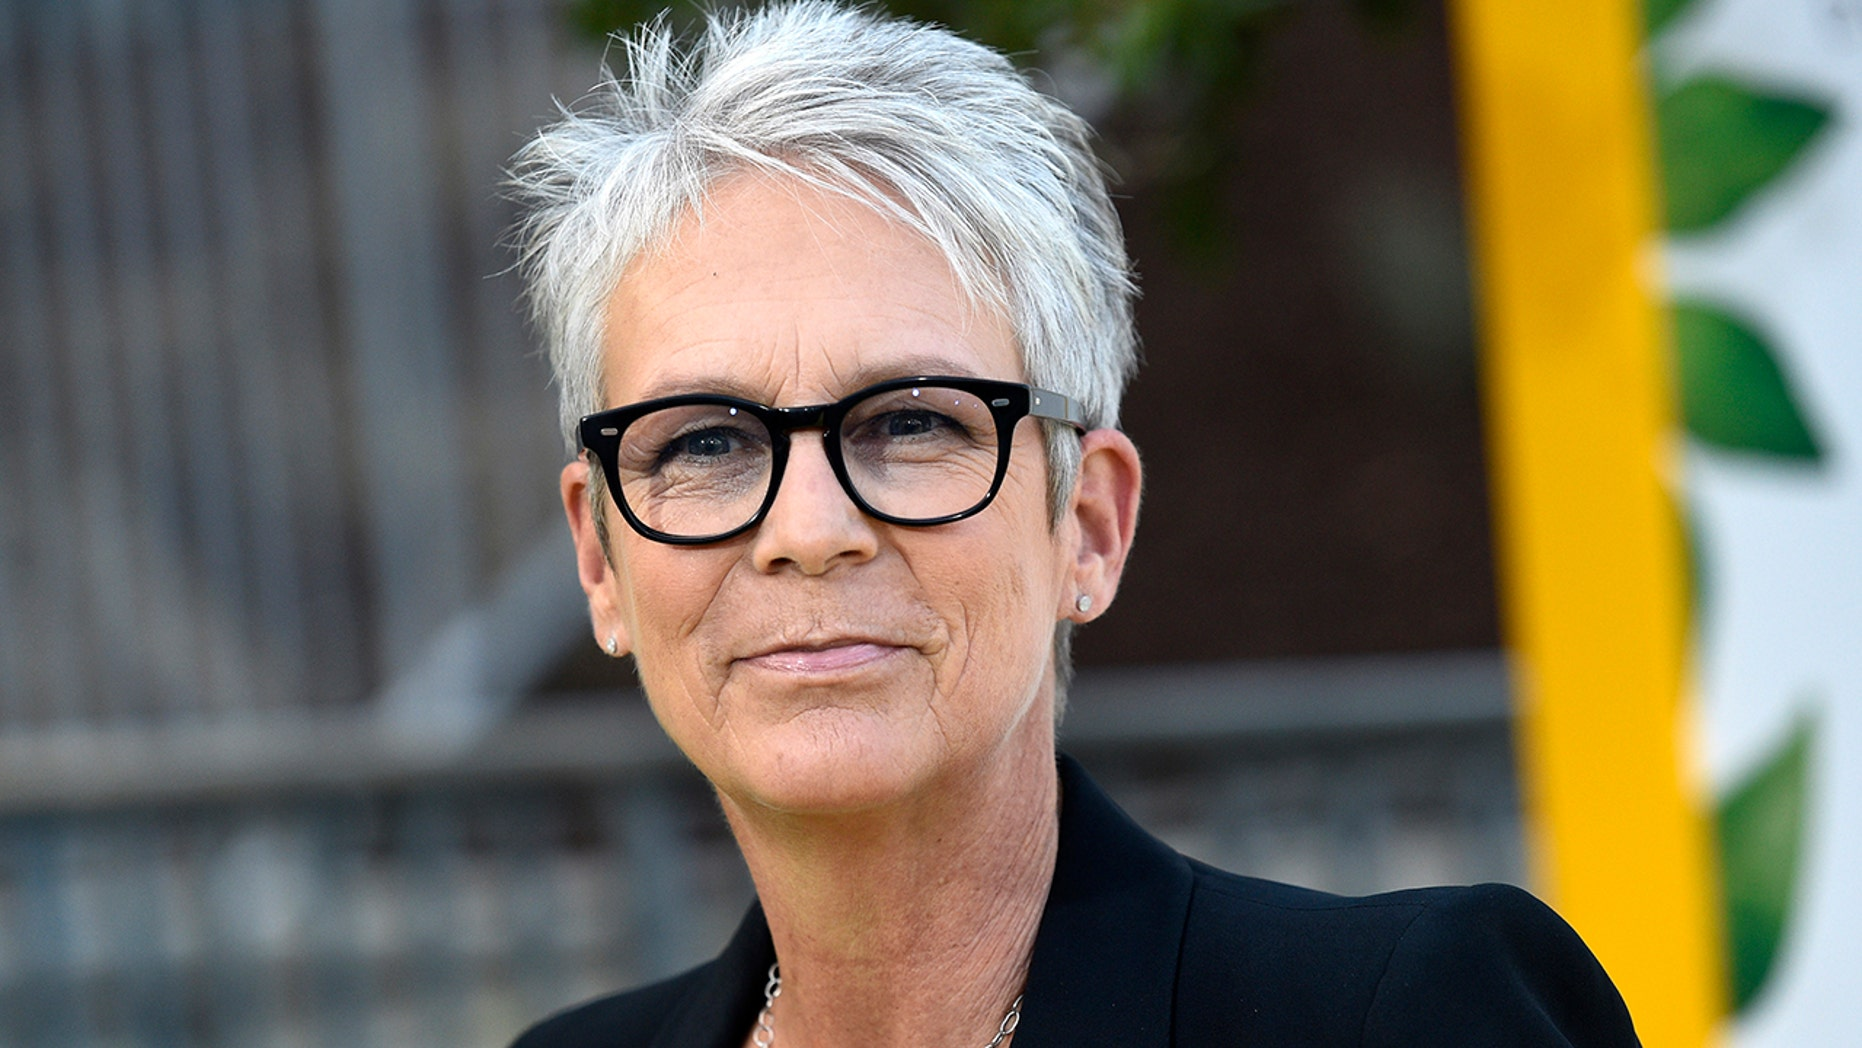 Jamie Lee Curtis responds to Fox article about guns in 'Halloween' movie